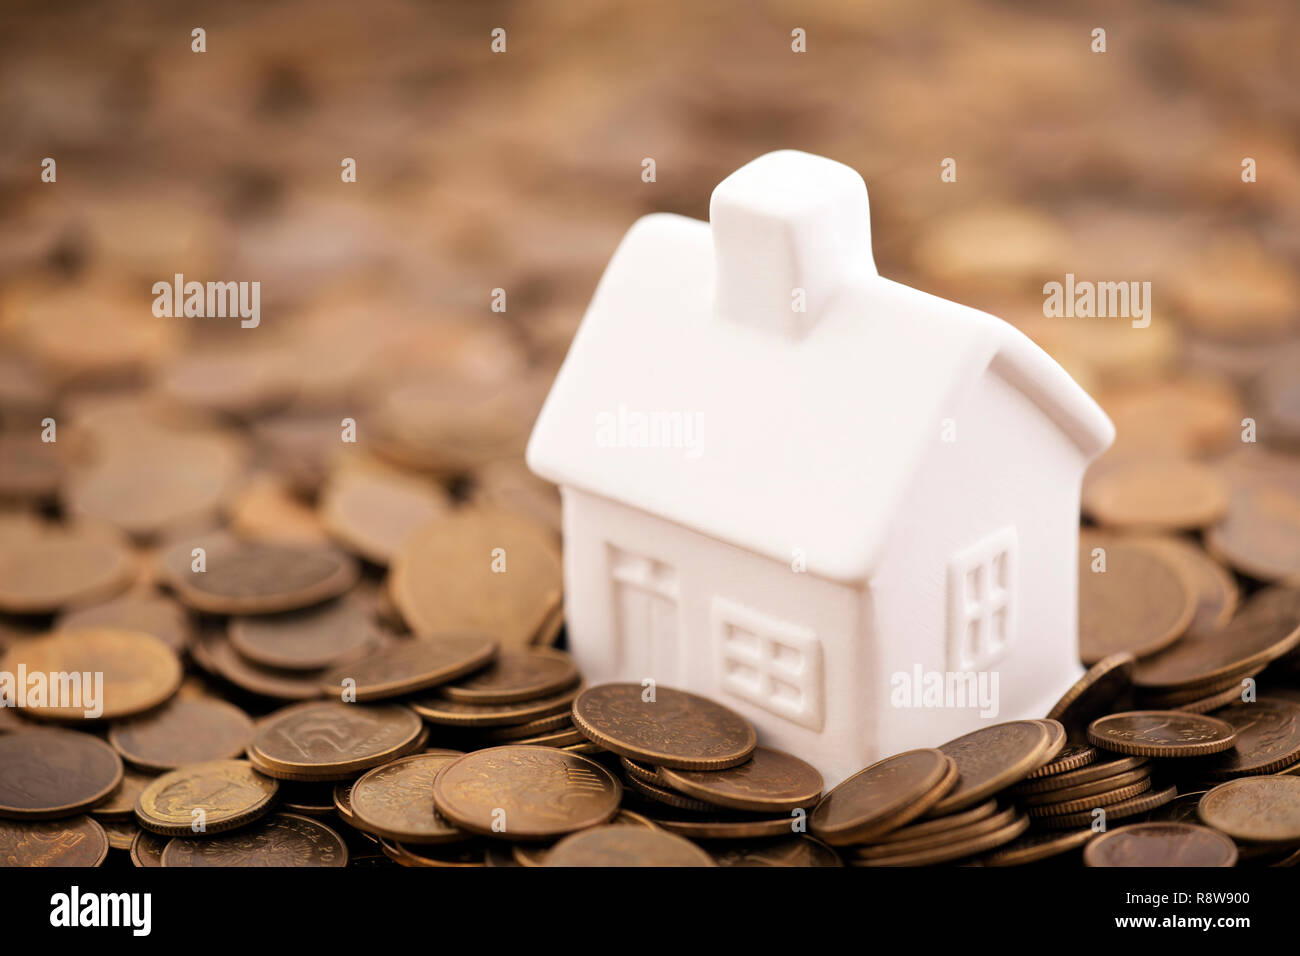 Small toy house on coins - Stock Image